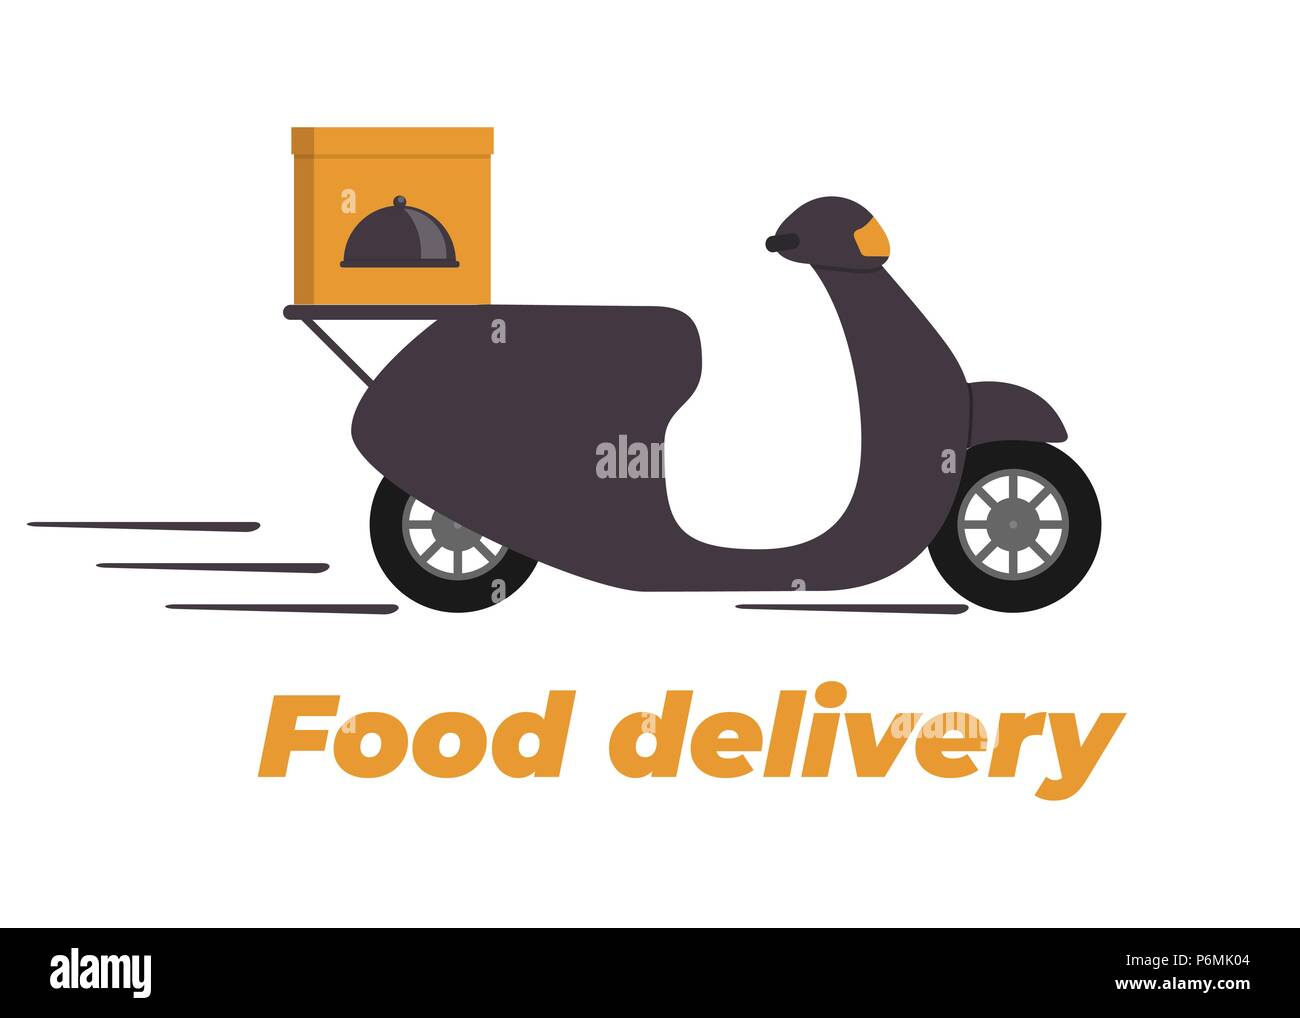 food delivery in mk